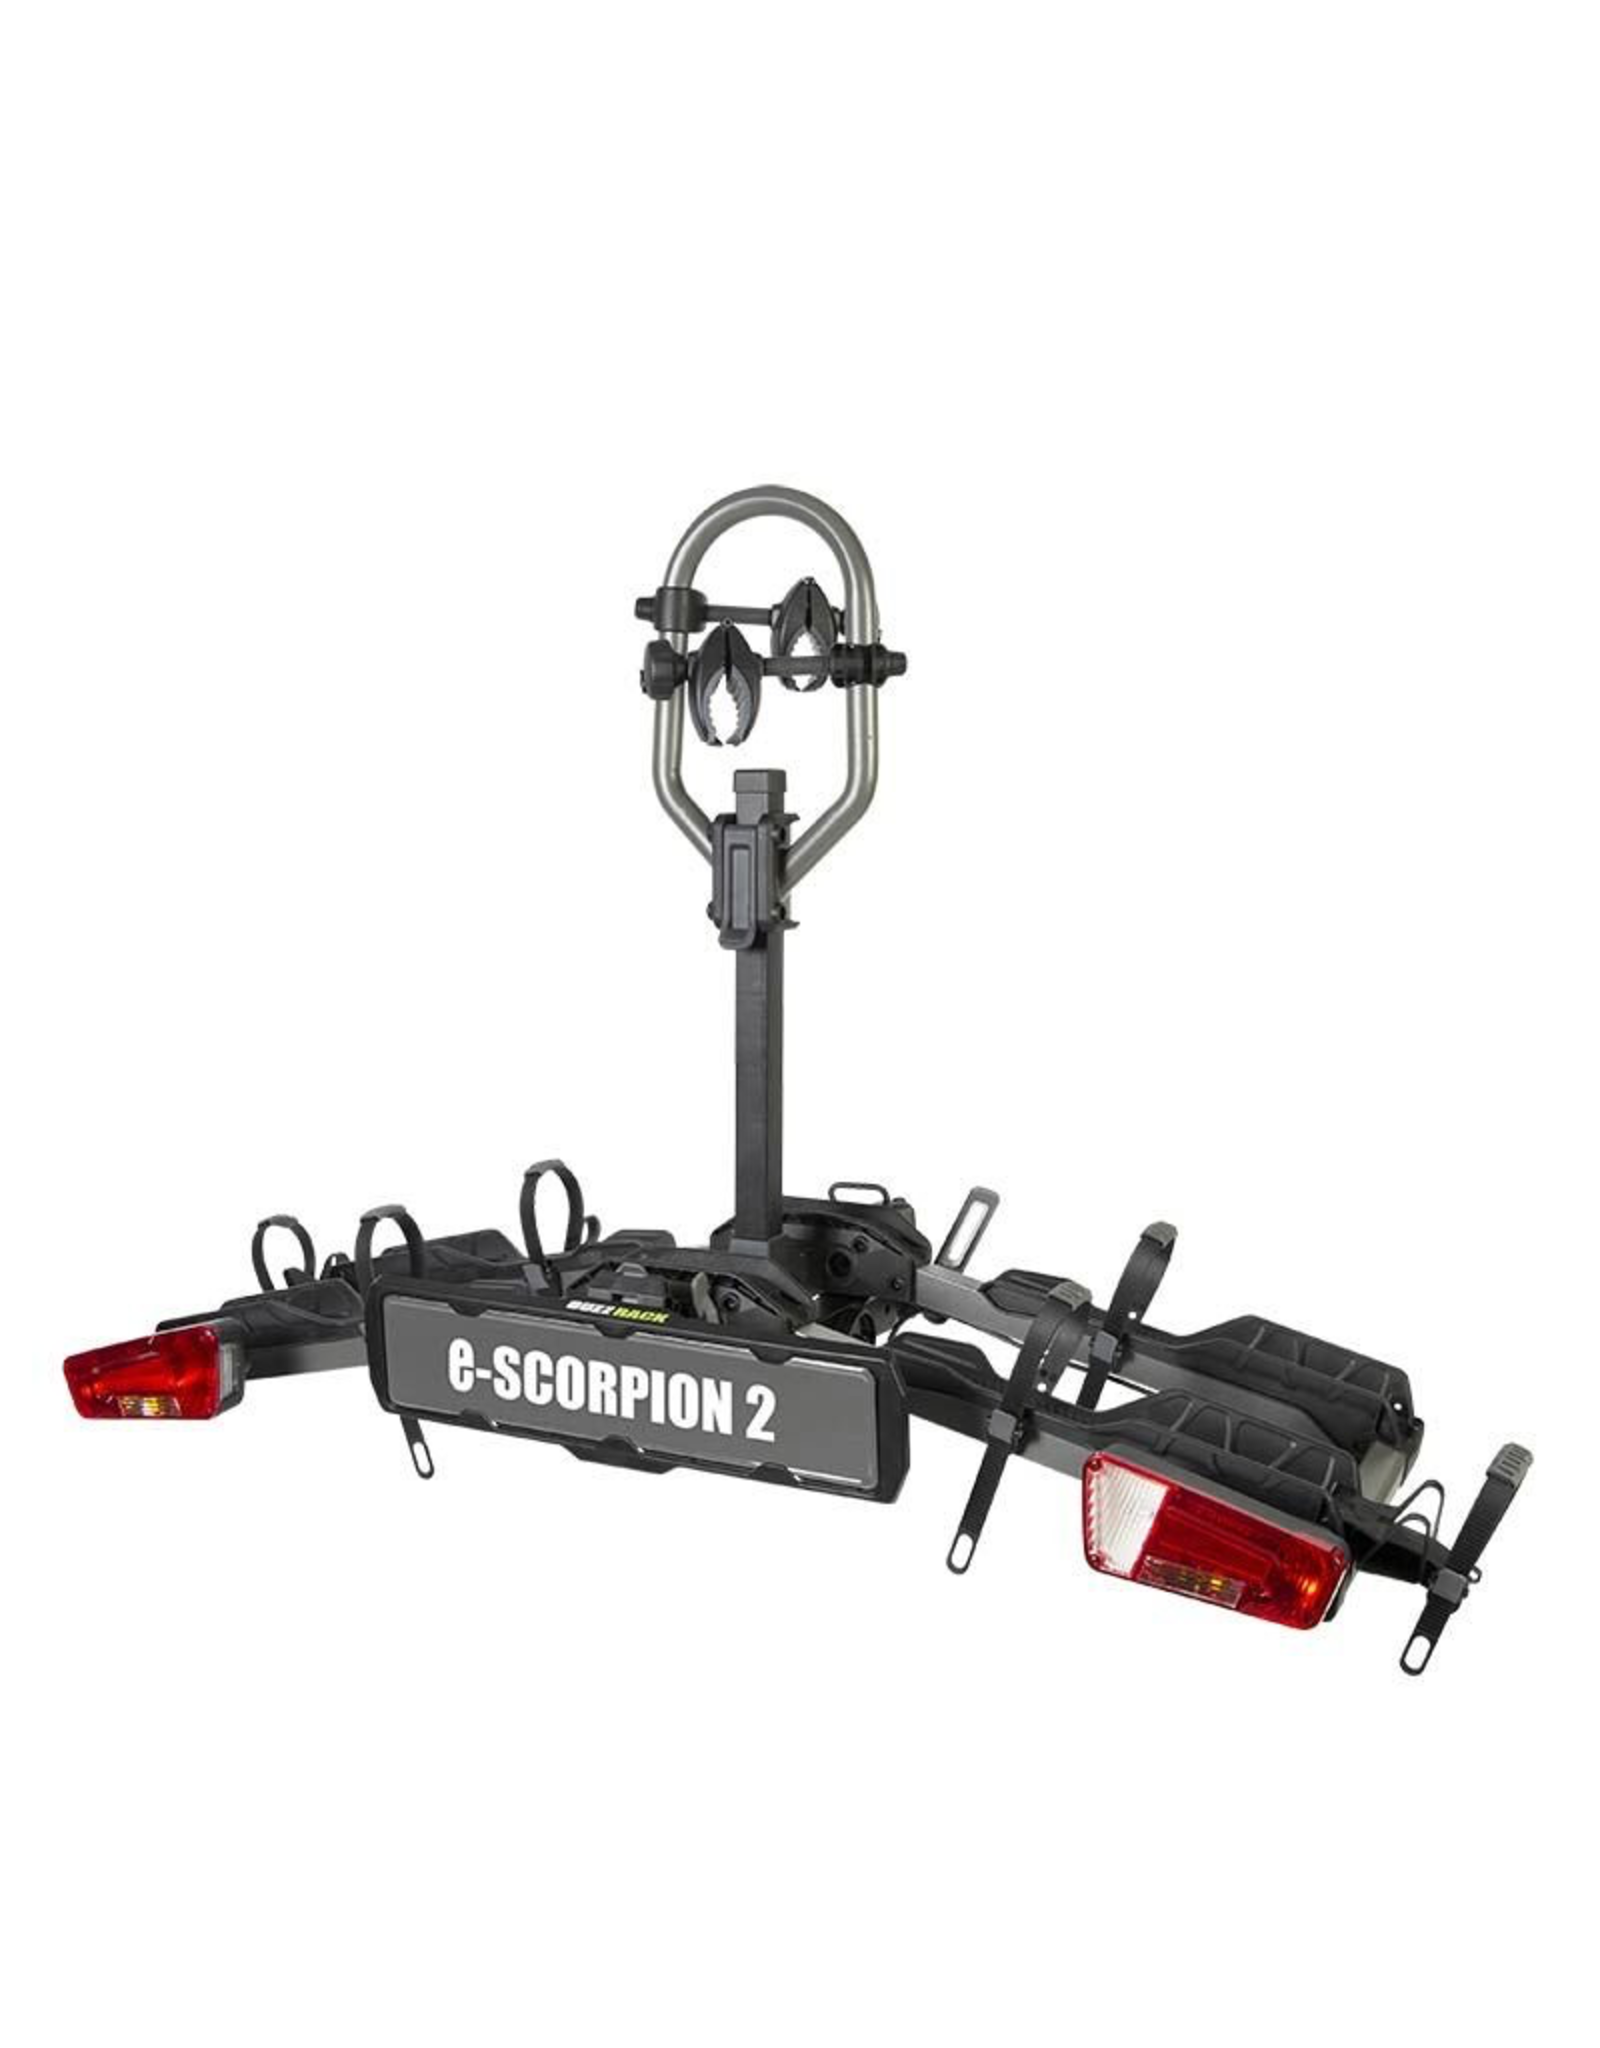 BUZZRACK CAR RACK BUZZRACK SCORPION PLATFORM RACK 2 BIKE RACK FOR E/FAT BIKES TOW BALL MOUNT